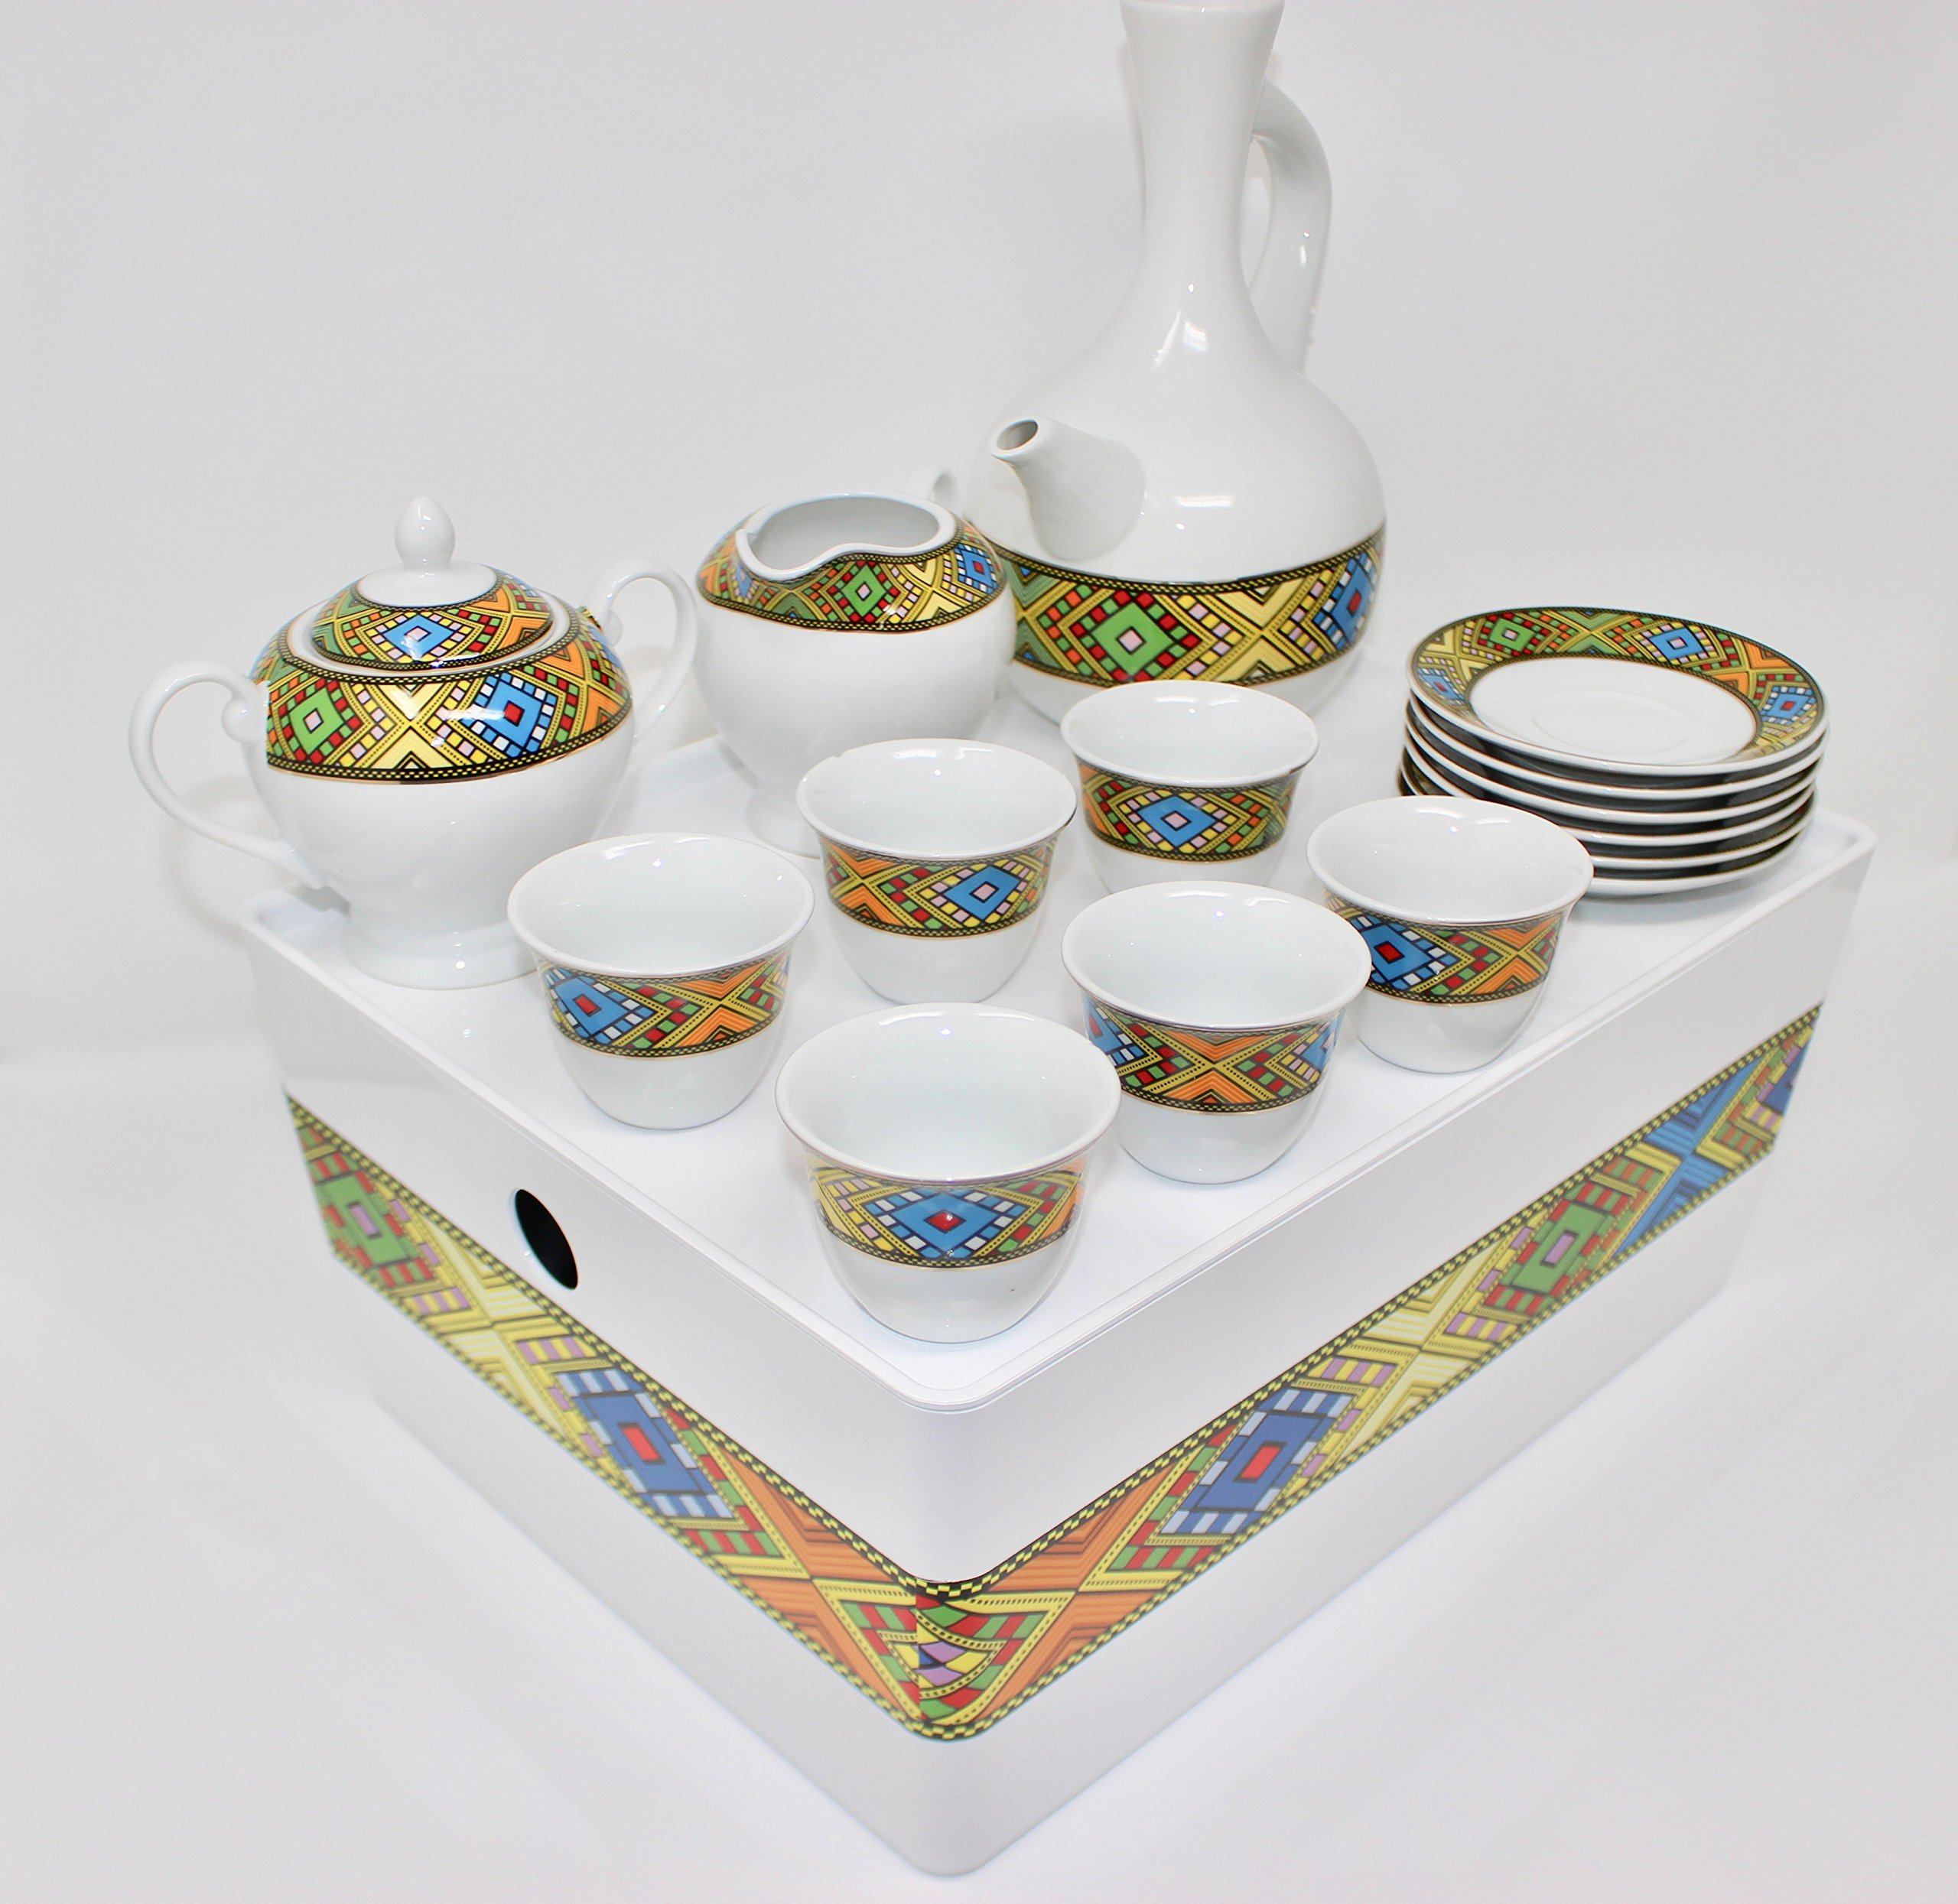 Ethiopian/Eritrean Coffee Cups with Rékébot, Abyssinian Coffee cups, Jebena, Rekebot, Ethiopian art, Eritrean Coffee, Habesha Coffee, Ethiopian Coffee ceremony, Full coffee Set by EthioDesigns (Image #2)